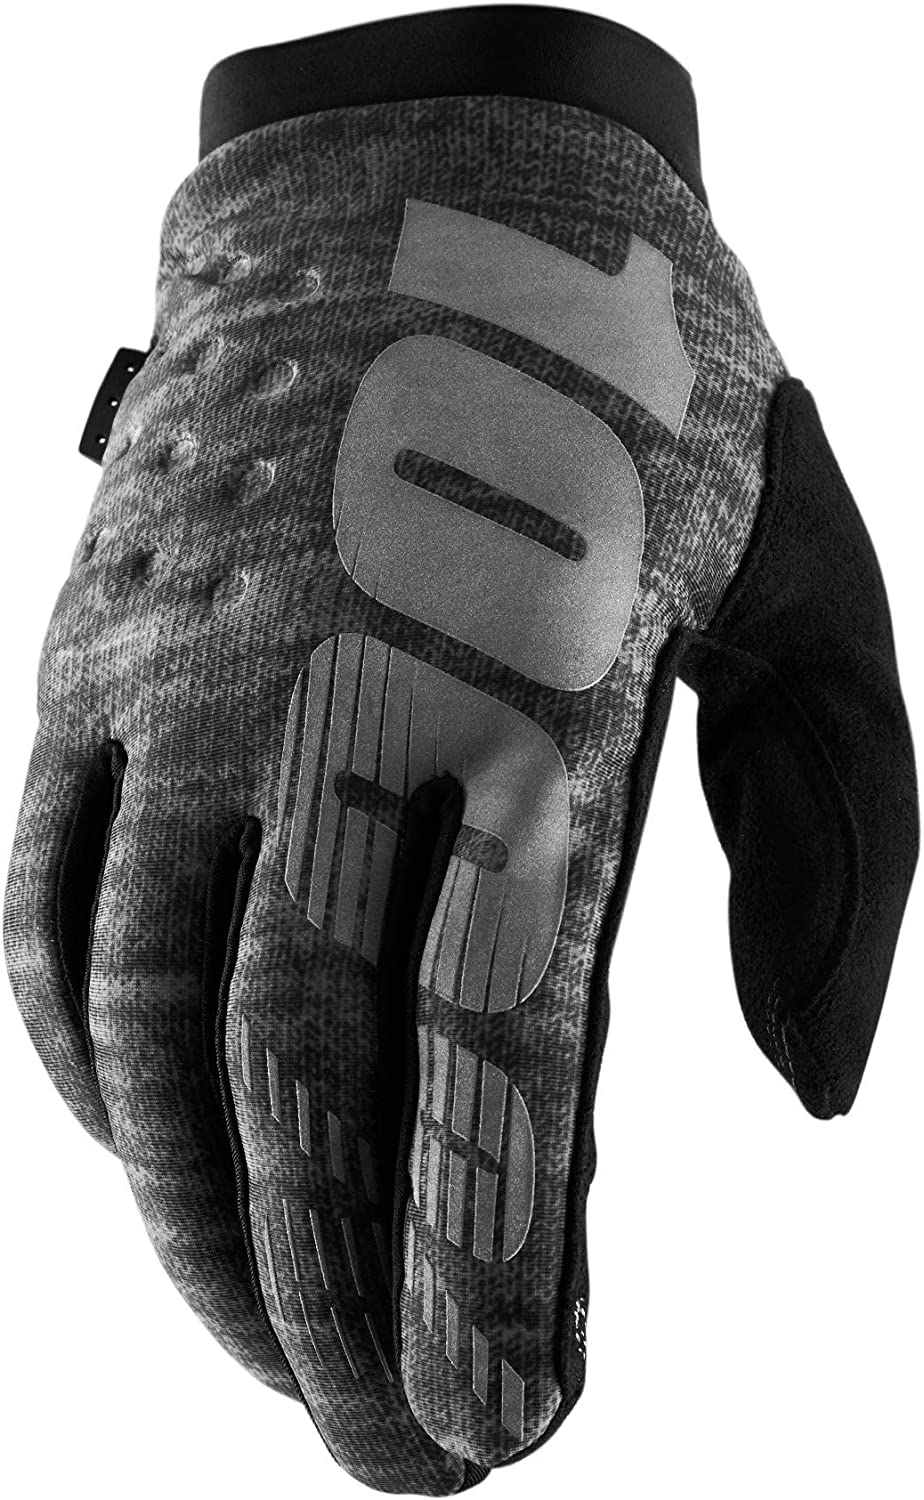 MD - HEATHER MTB /& MX Racing Protective Gear Medium 100/% Brisker Cold Weather Cold Weather Motocross /& Mountain Bike Gloves